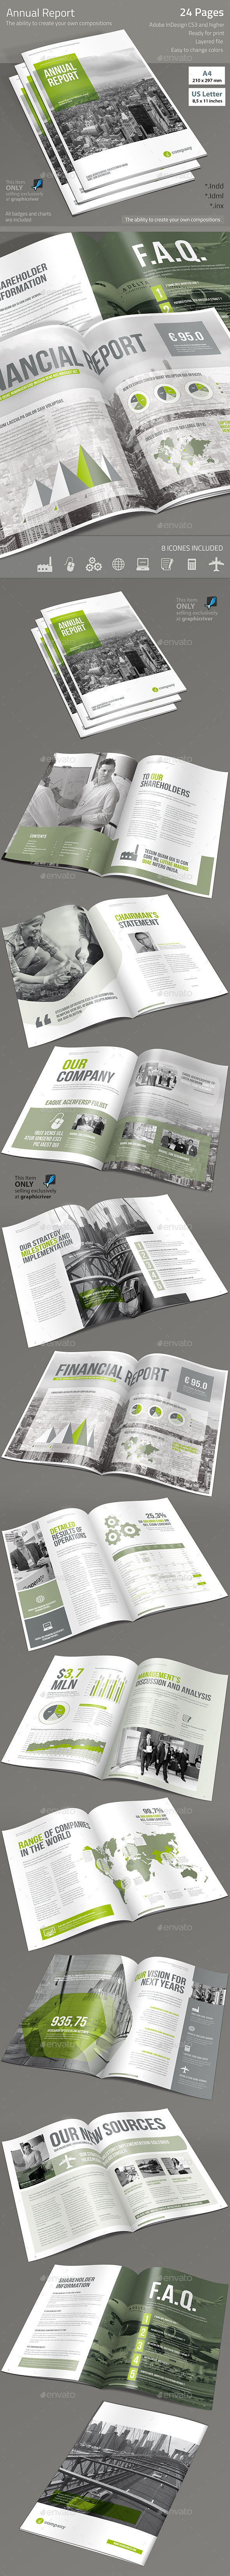 GraphicRiver Annual Report Vol 2 9055645